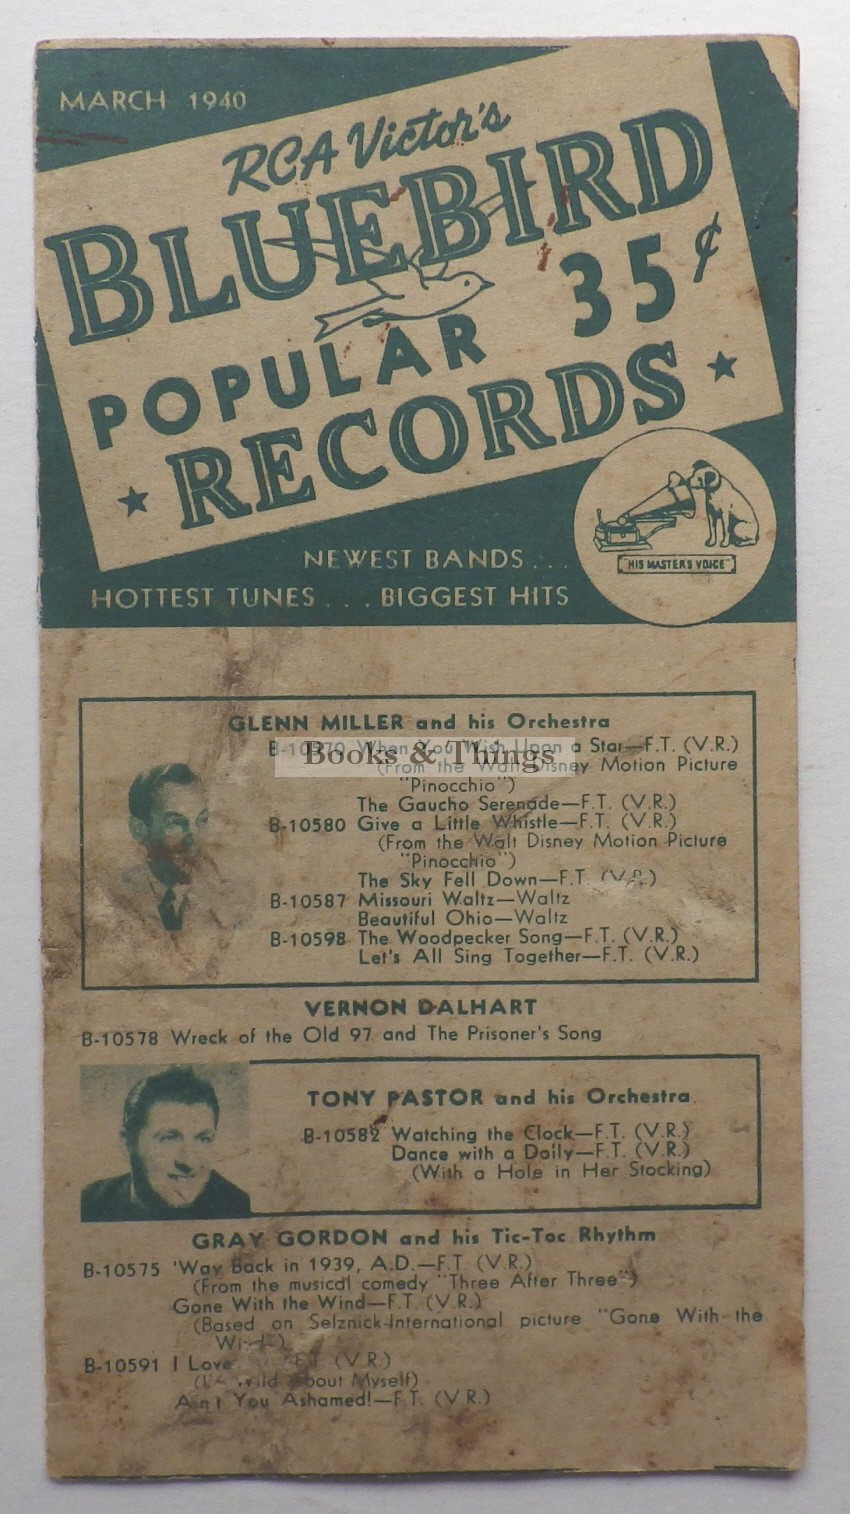 Bluebird records catalogue